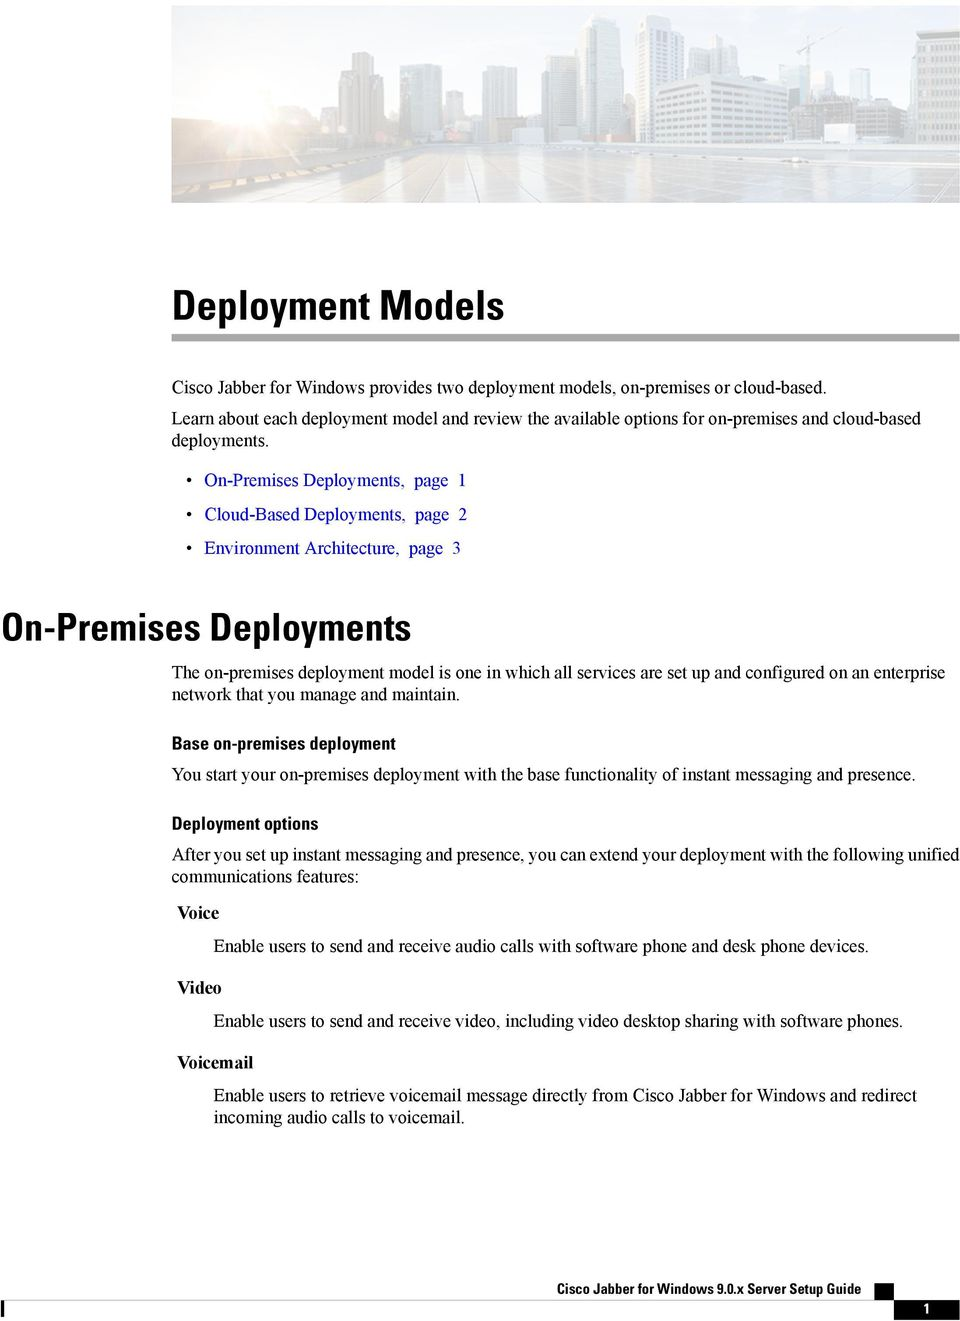 On-Premises Deployments, page 1 Cloud-Based Deployments, page 2 Environment Architecture, page 3 On-Premises Deployments The on-premises deployment model is one in which all services are set up and